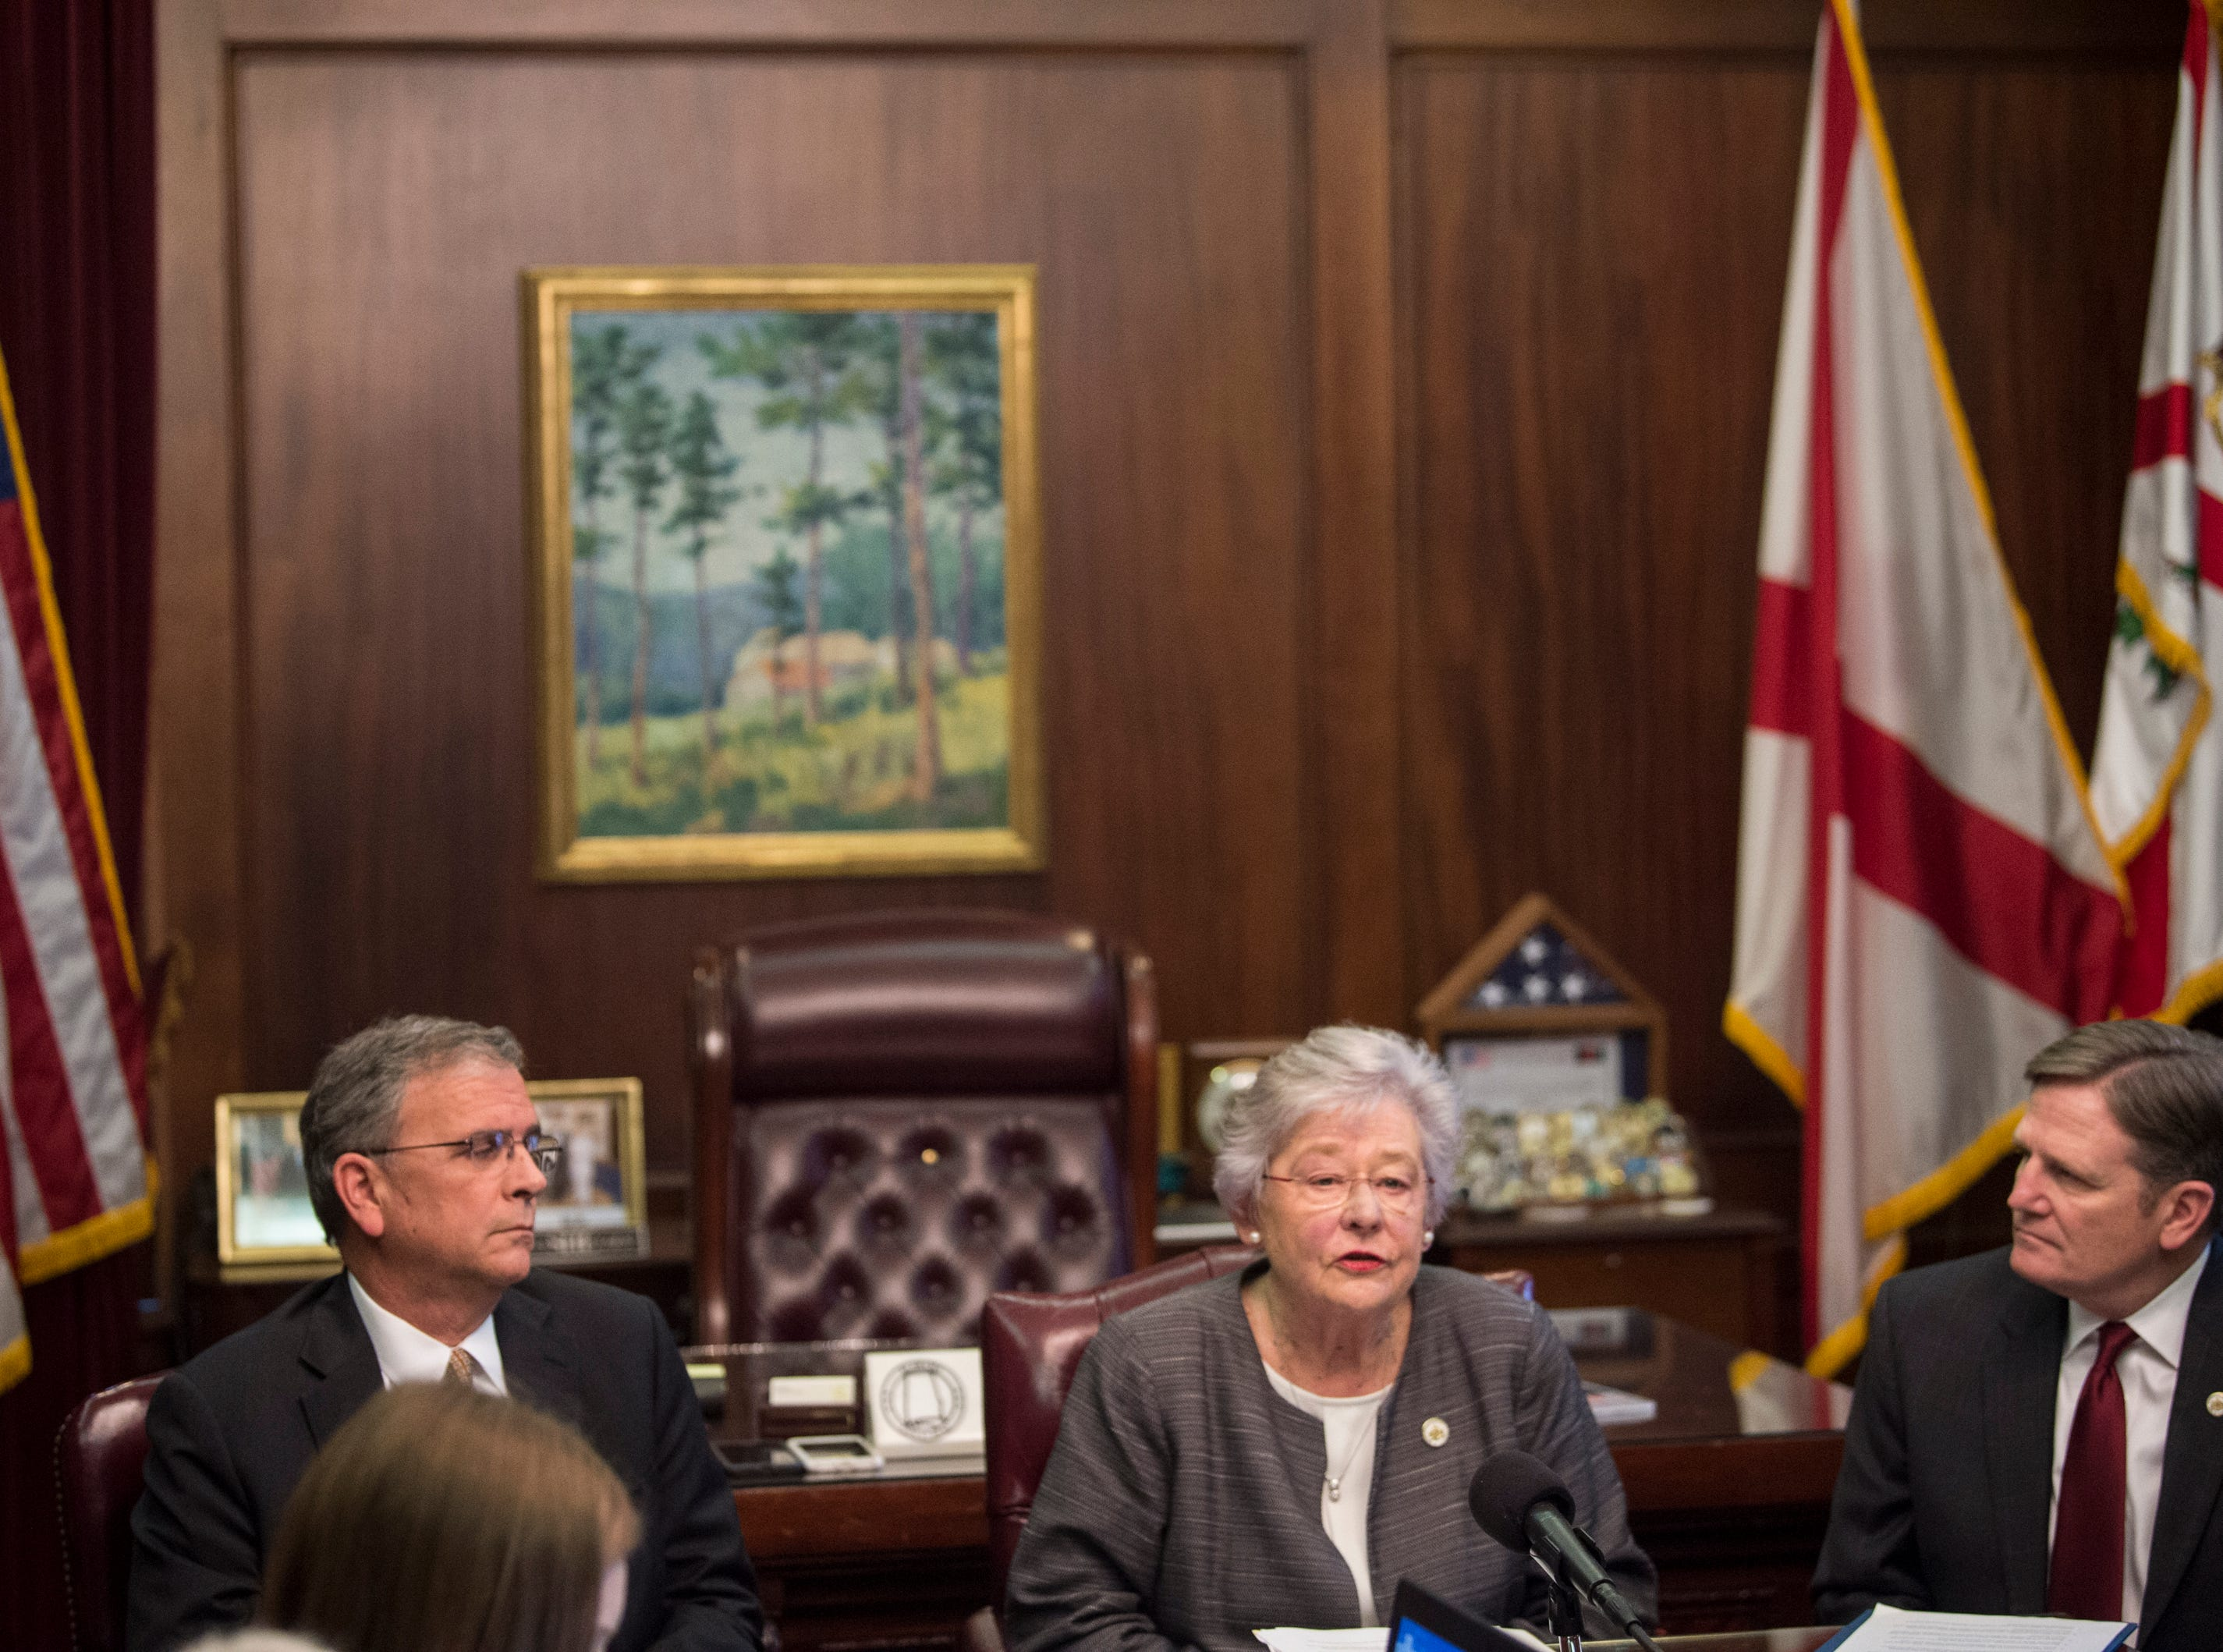 Gov. Kay Ivey, middle speaks with Mike Lanier, left, president of HPM leadership, and Jeff Dunn, right, Commissioner of the Alabama Department of Corrections, during a press conference in the Governor's office at the Alabama State Capitol in Montgomery, Ala., on Tuesday, Feb. 12, 2019.